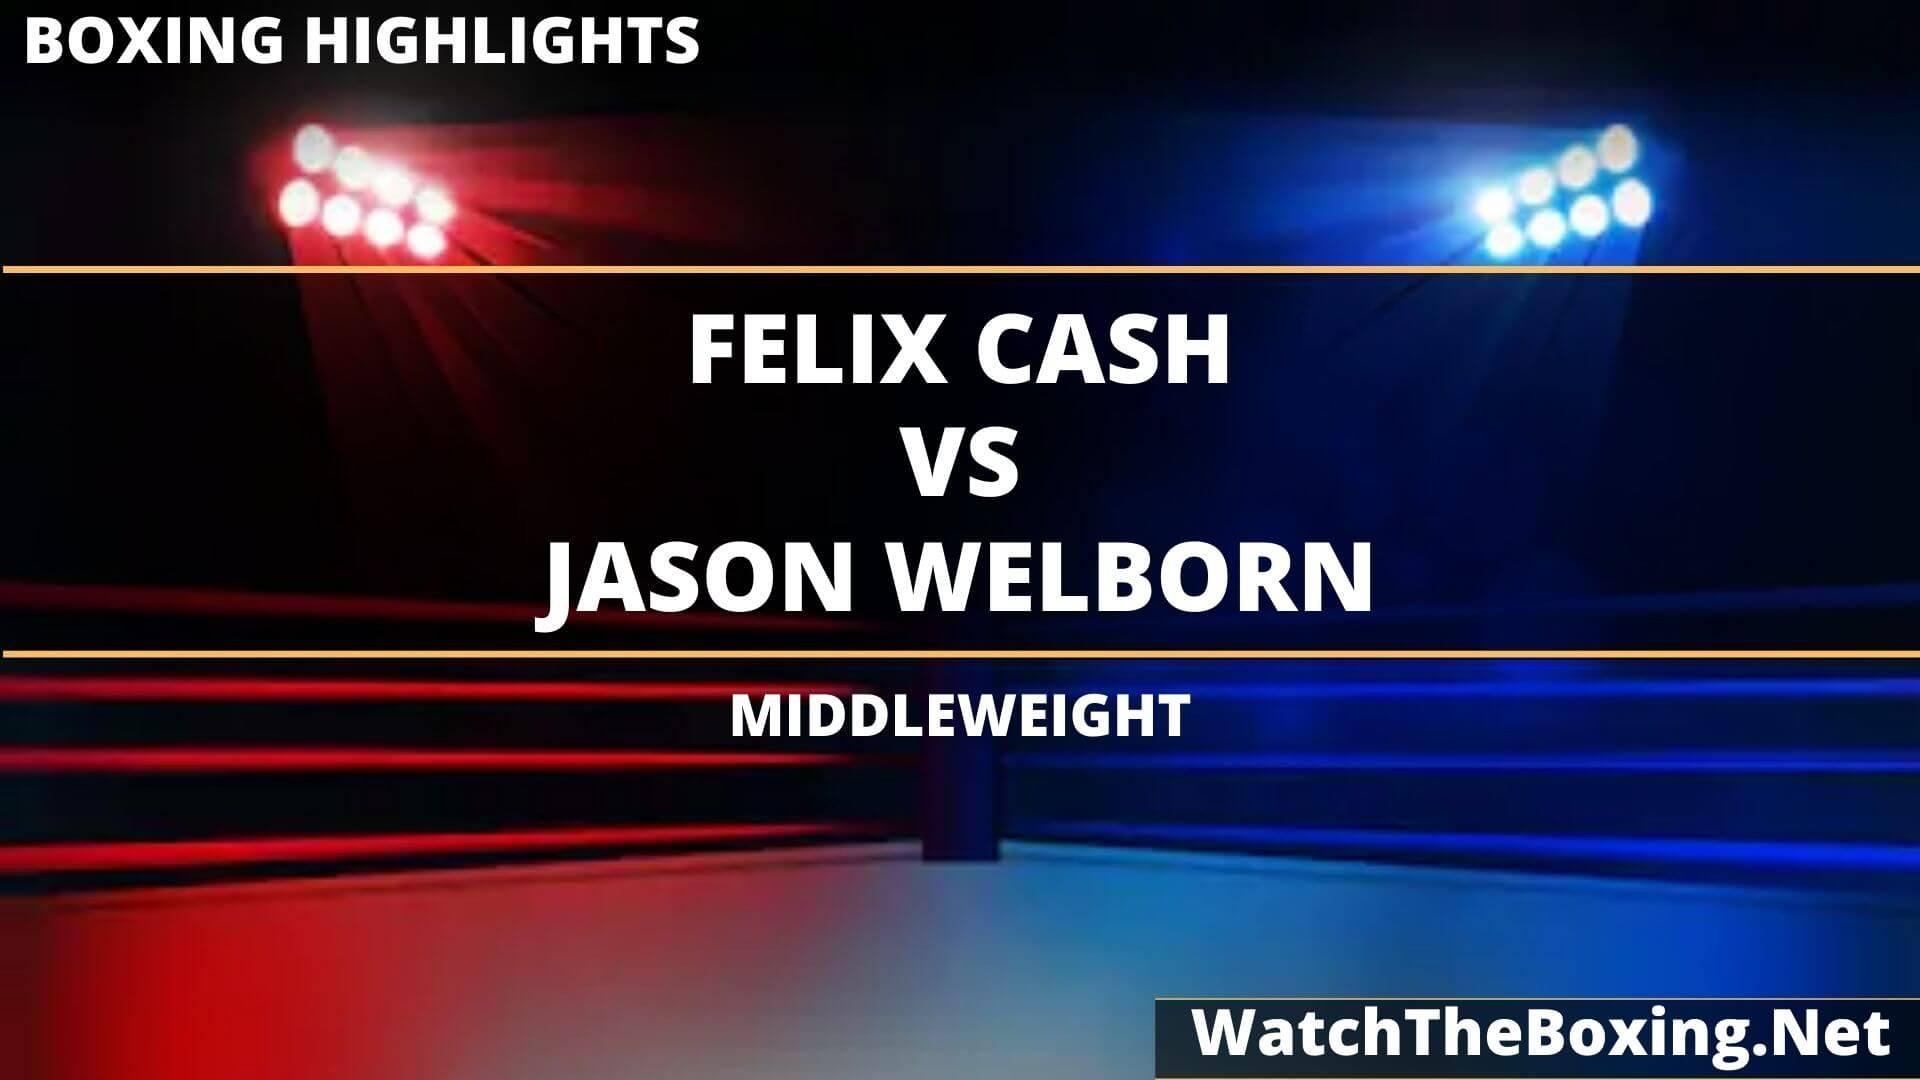 Felix Cash Vs Jason Welborn Highlights 2020 Middleweight